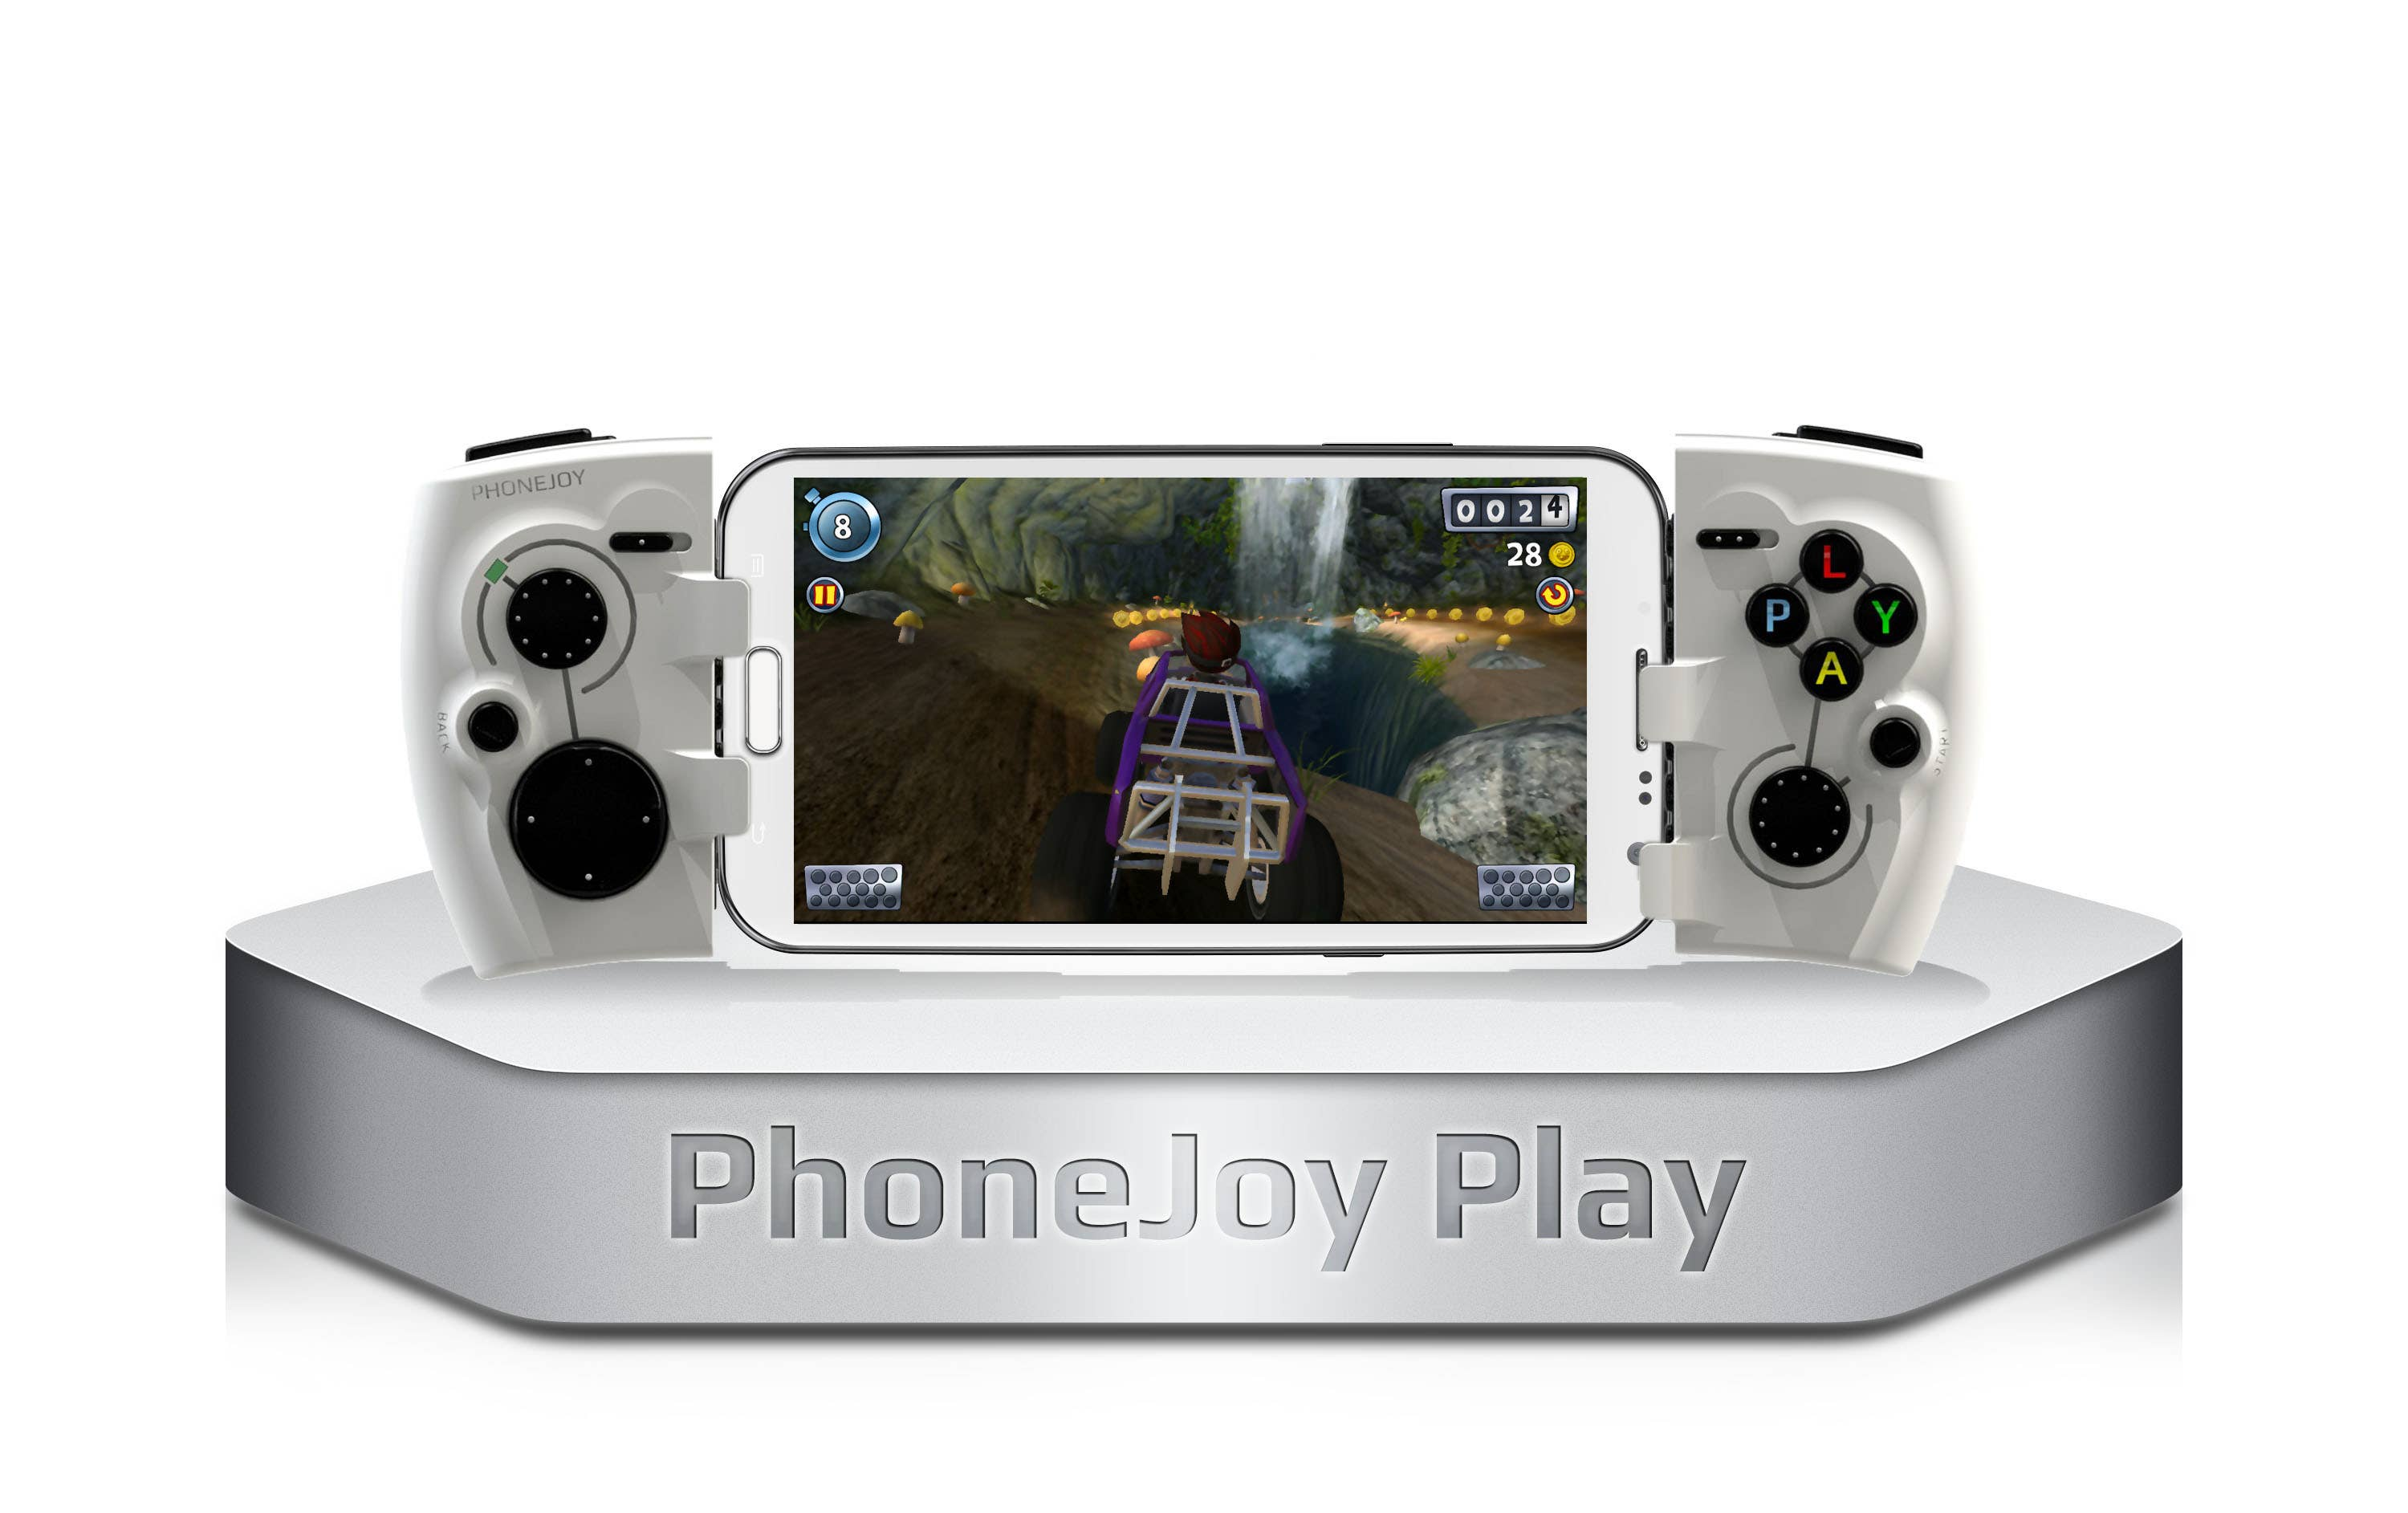 PhoneJoy Play Mechanical Patented Design